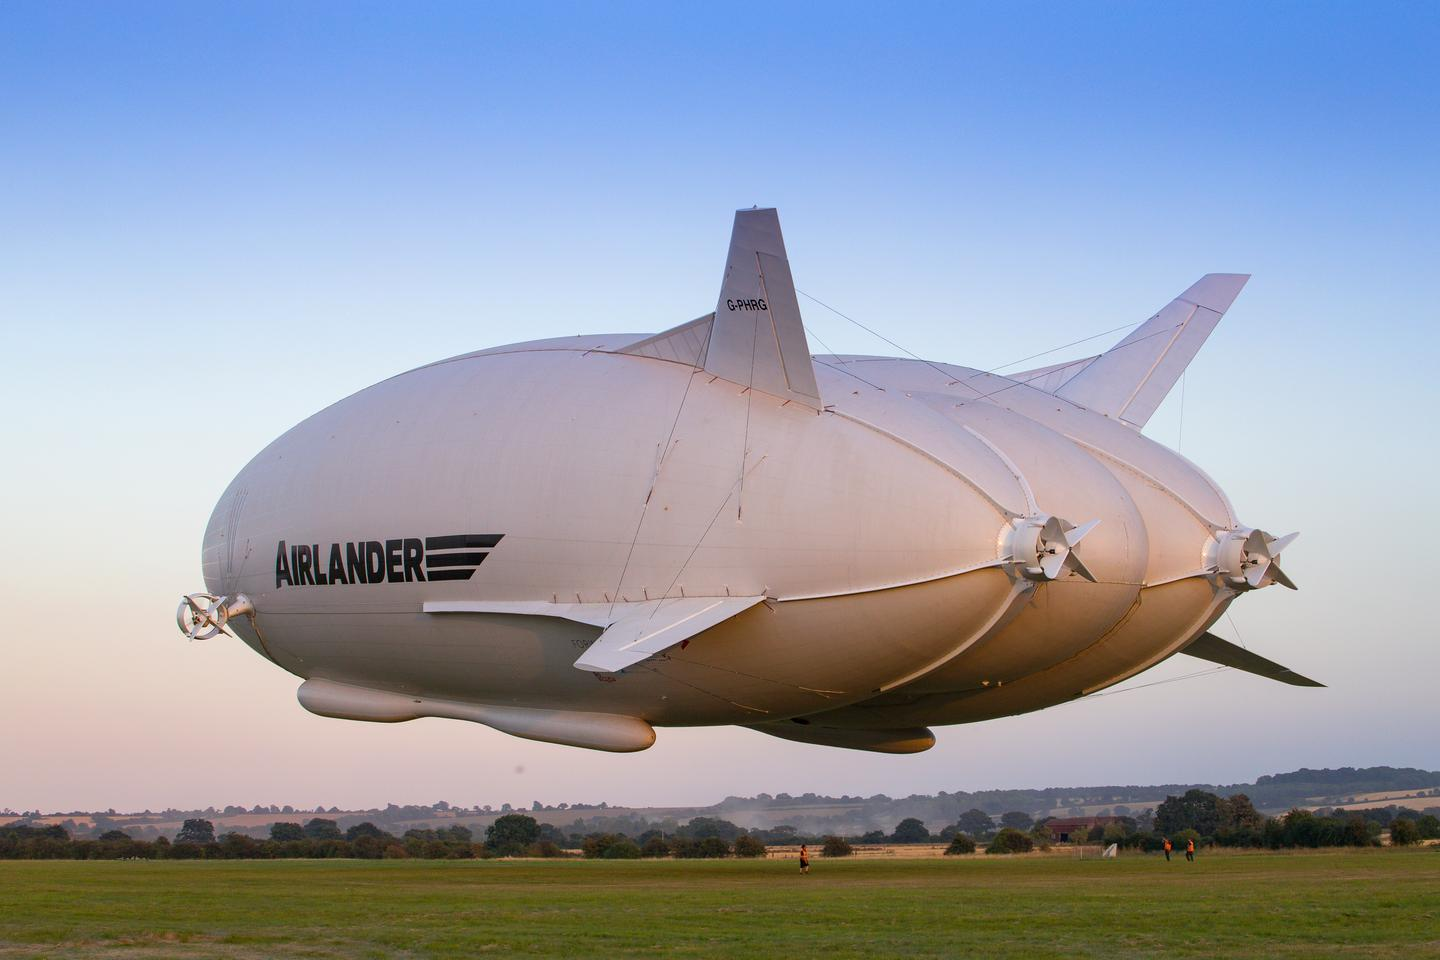 The current Airlander 10 prototype